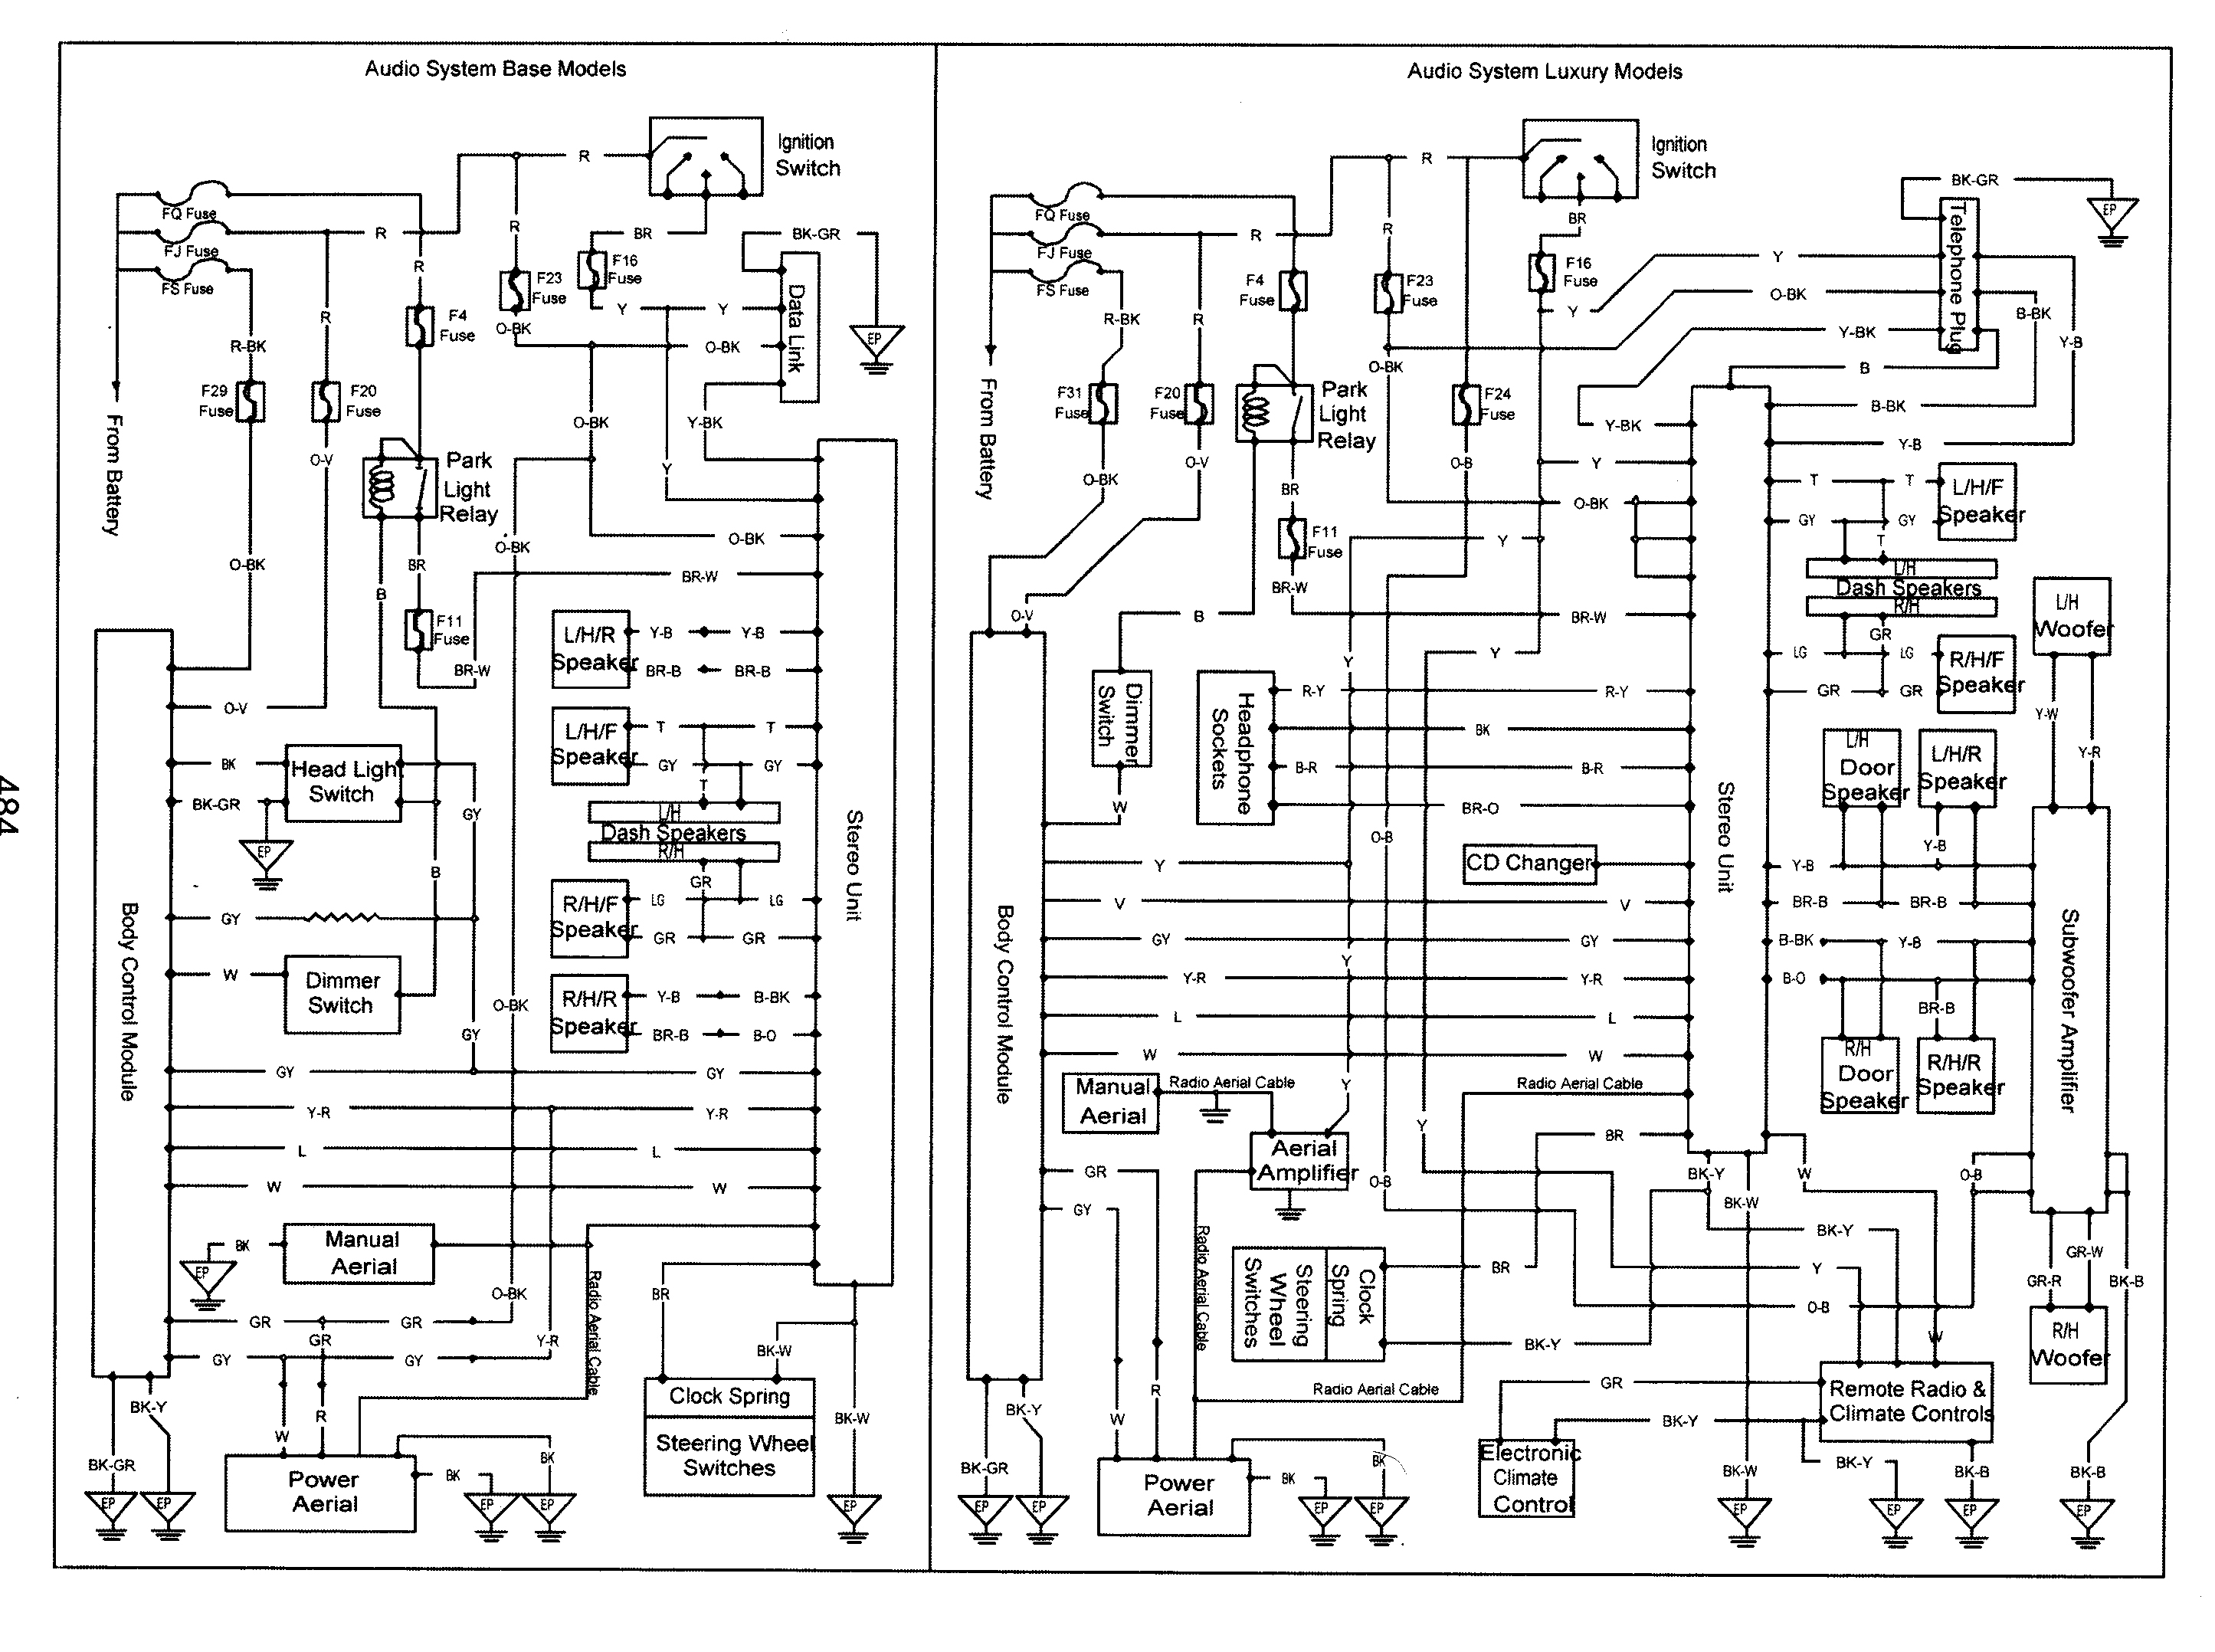 Wiring Diagram Vz Commodore: Ve commodore wiring diagram